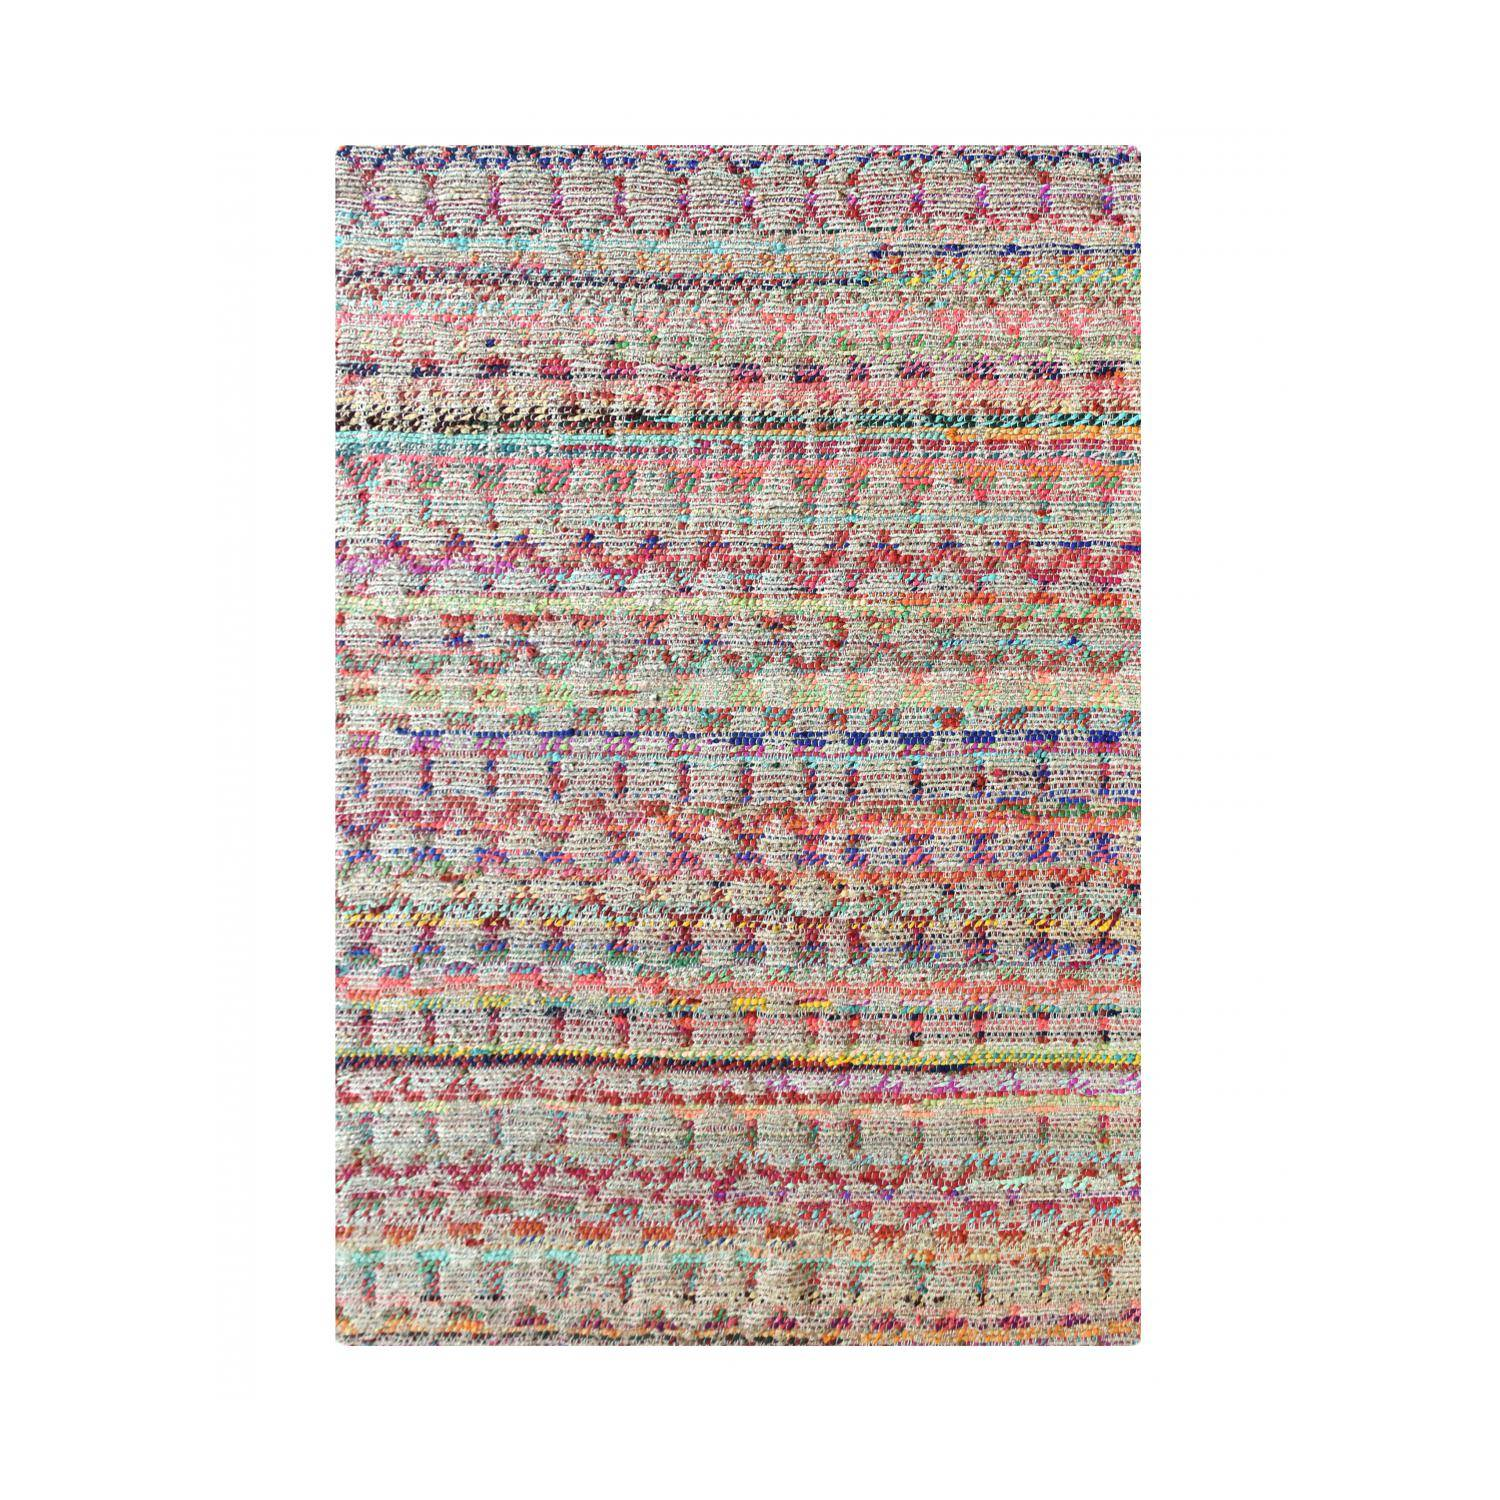 The Rug Republic Tapis  en chanvre multicolore 160 x 230